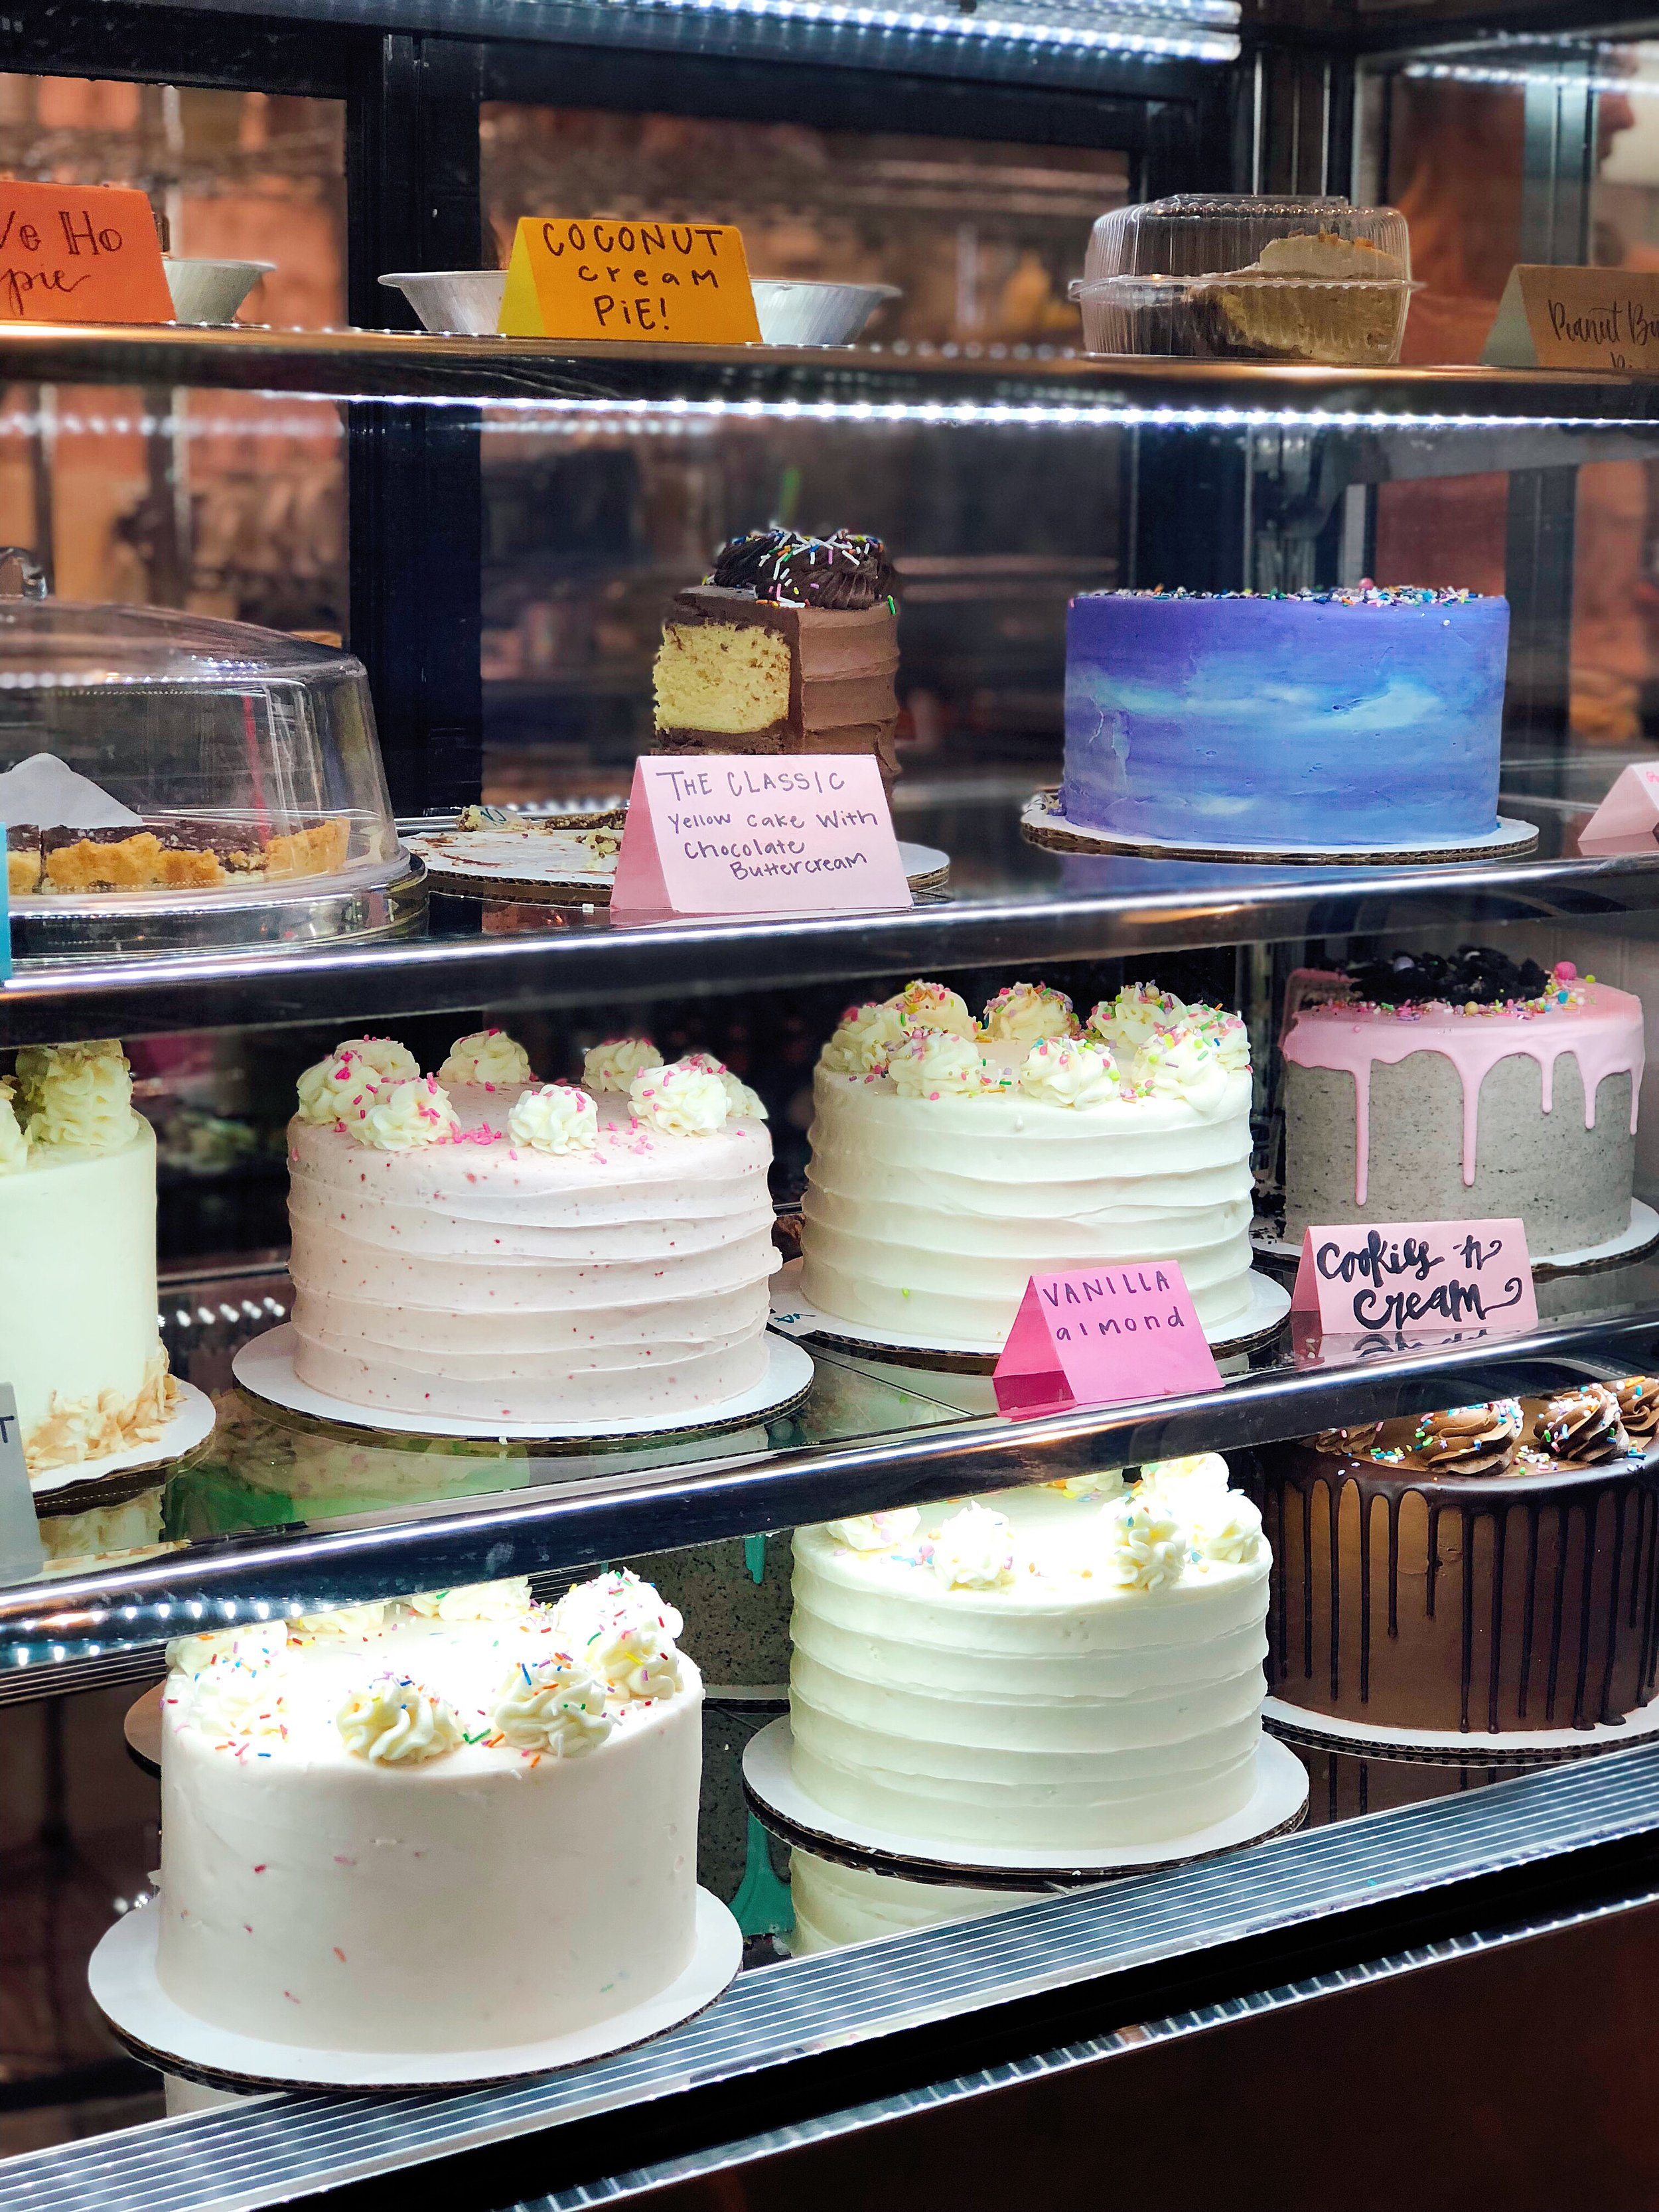 Have you ever seen such gorgeous cakes?